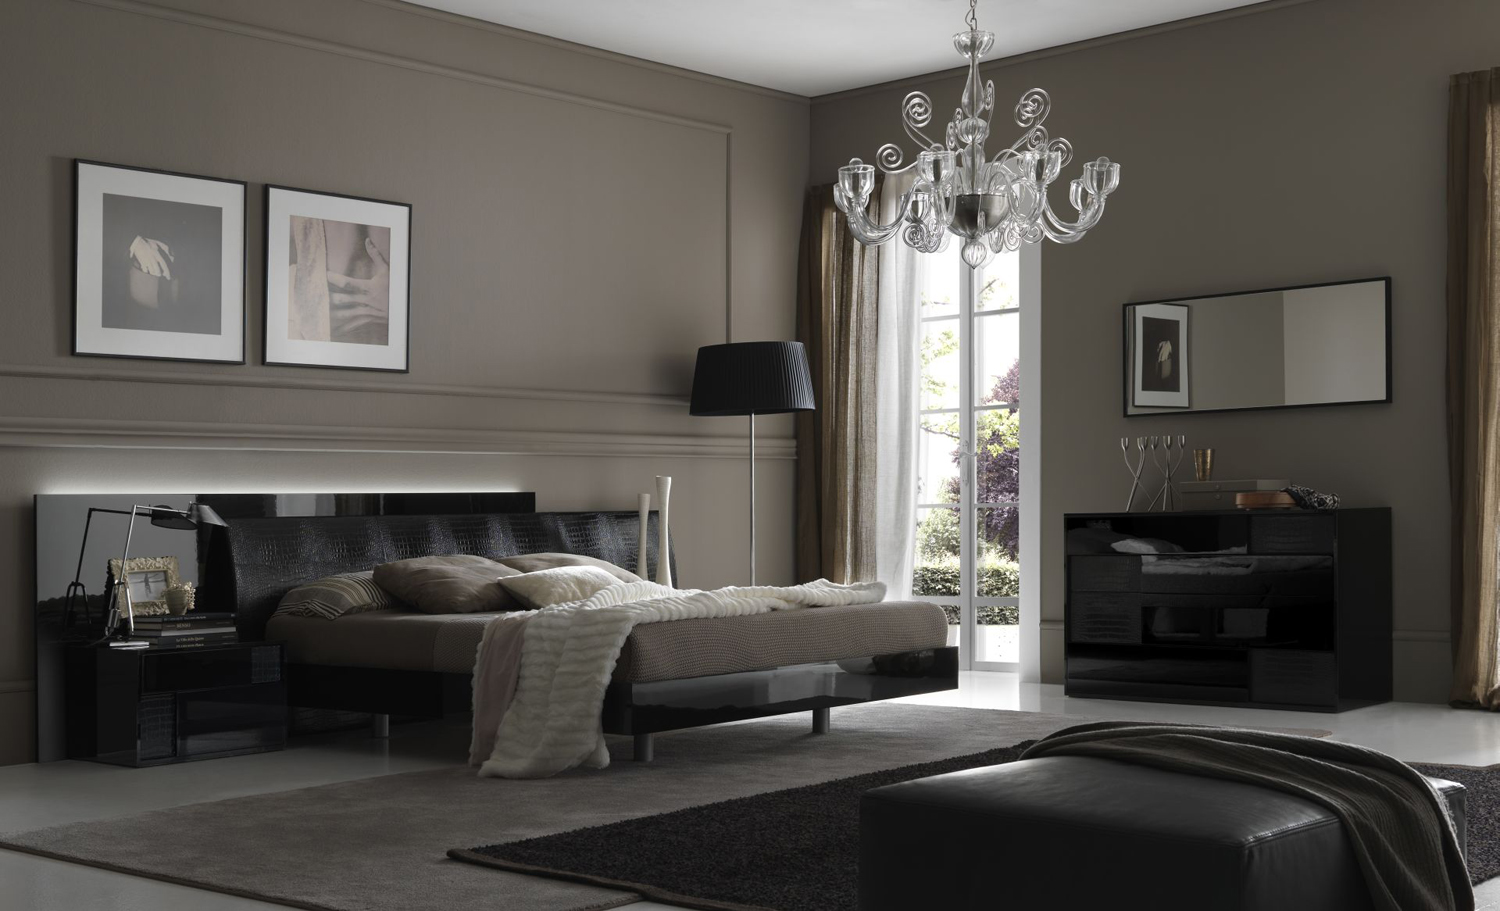 Bedroom decorating ideas from evinco for Contemporary room design